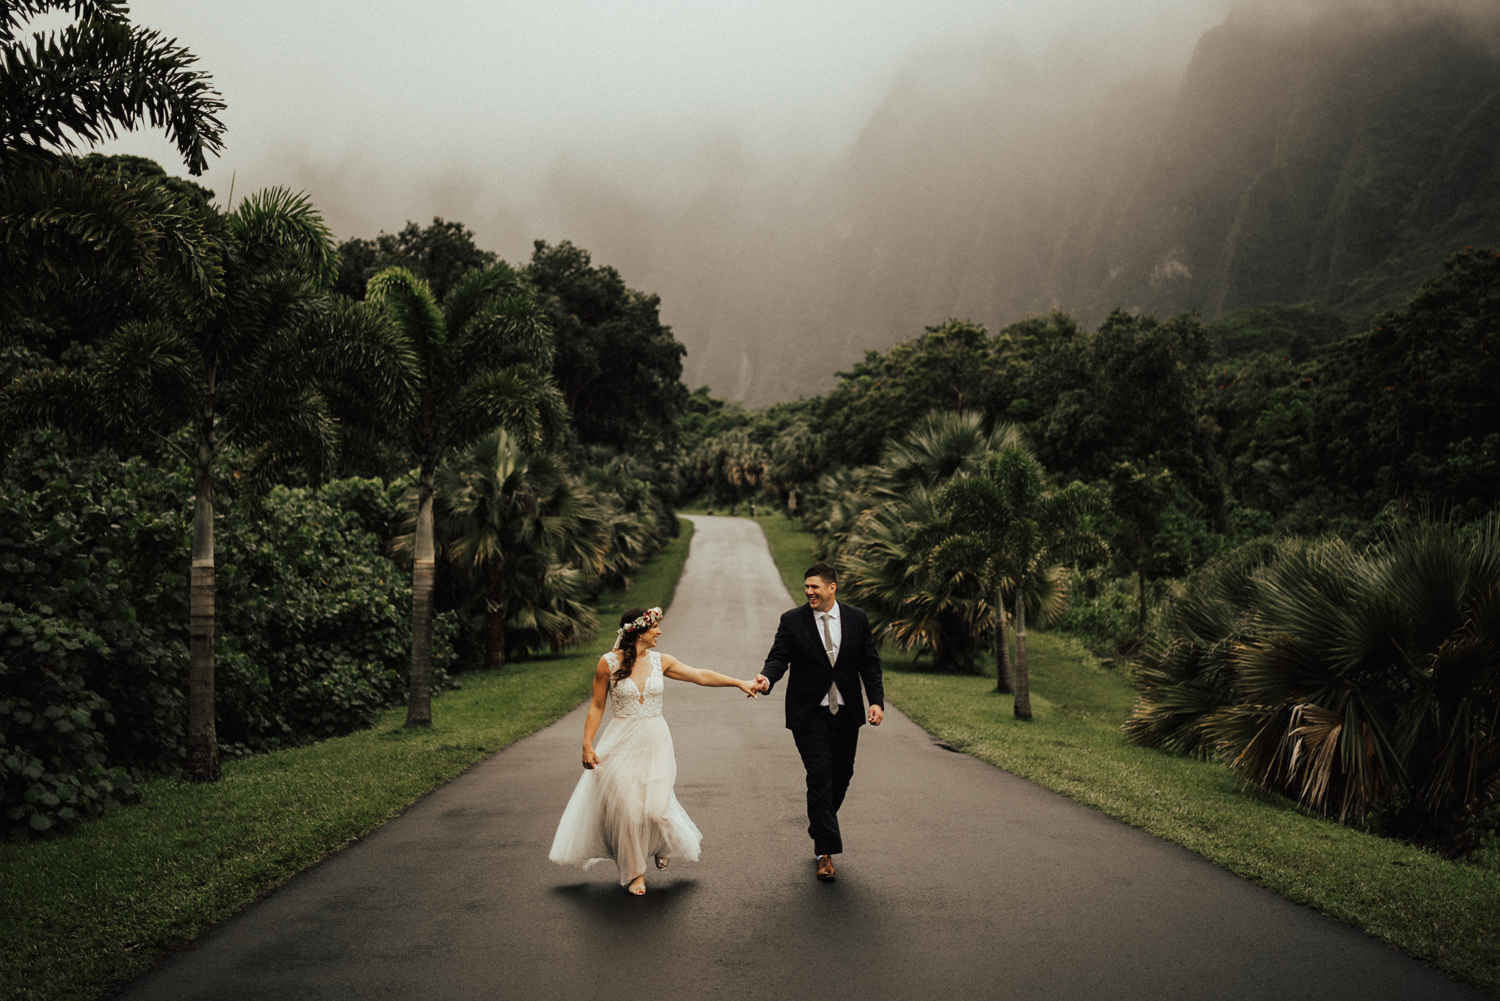 adventurous-Hawaii-elopement-photographers-31.jpg